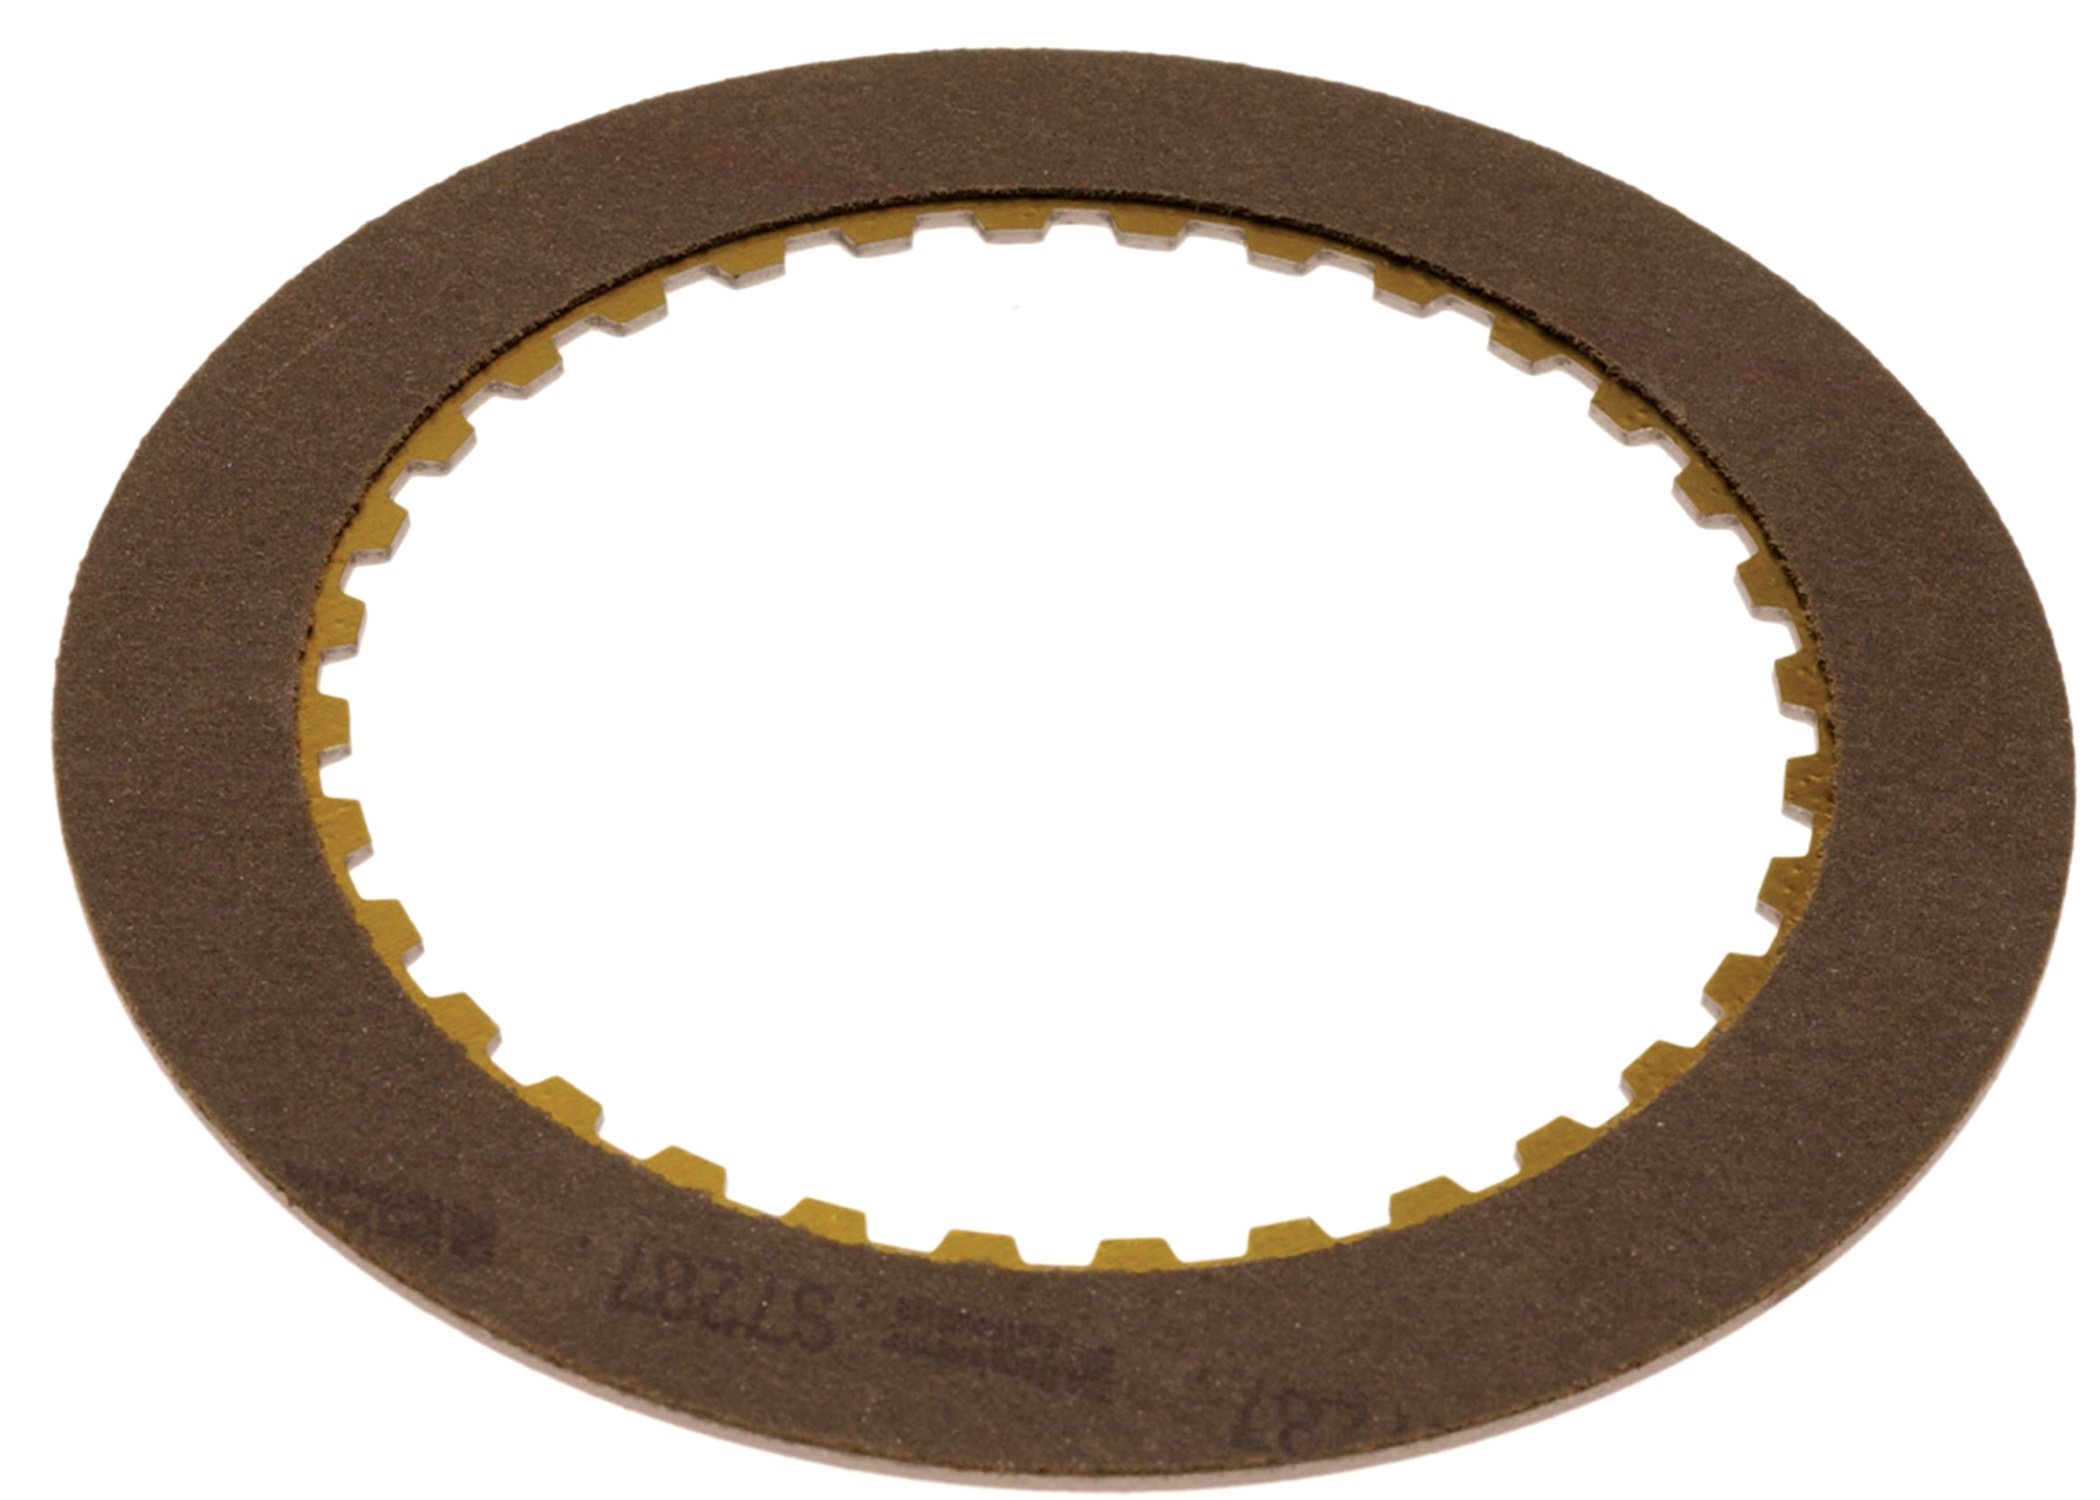 ACDELCO GM ORIGINAL EQUIPMENT - Automatic Transmission Clutch Plate - DCB 24216287